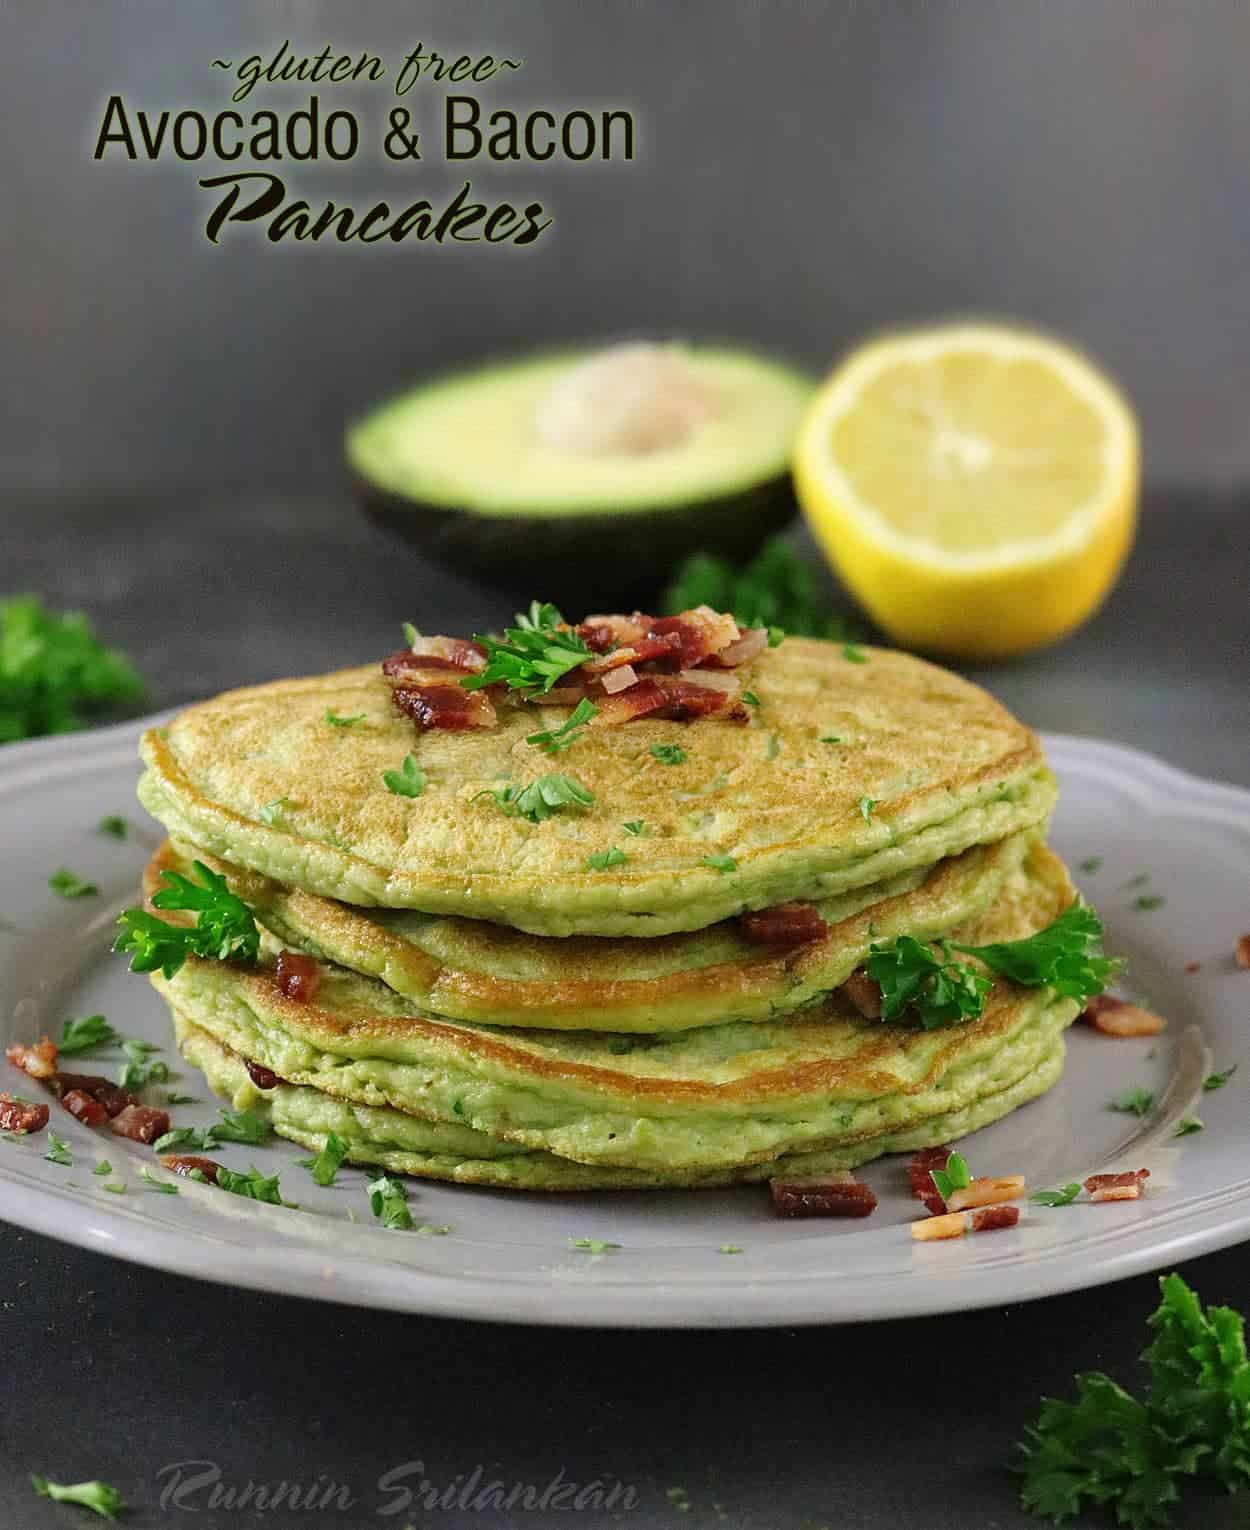 Avocado & Bacon Pancakes - The recipe for these delicious, gluten free, savory (no sugar) pancakes can be found at http://RunninSrilankan.com